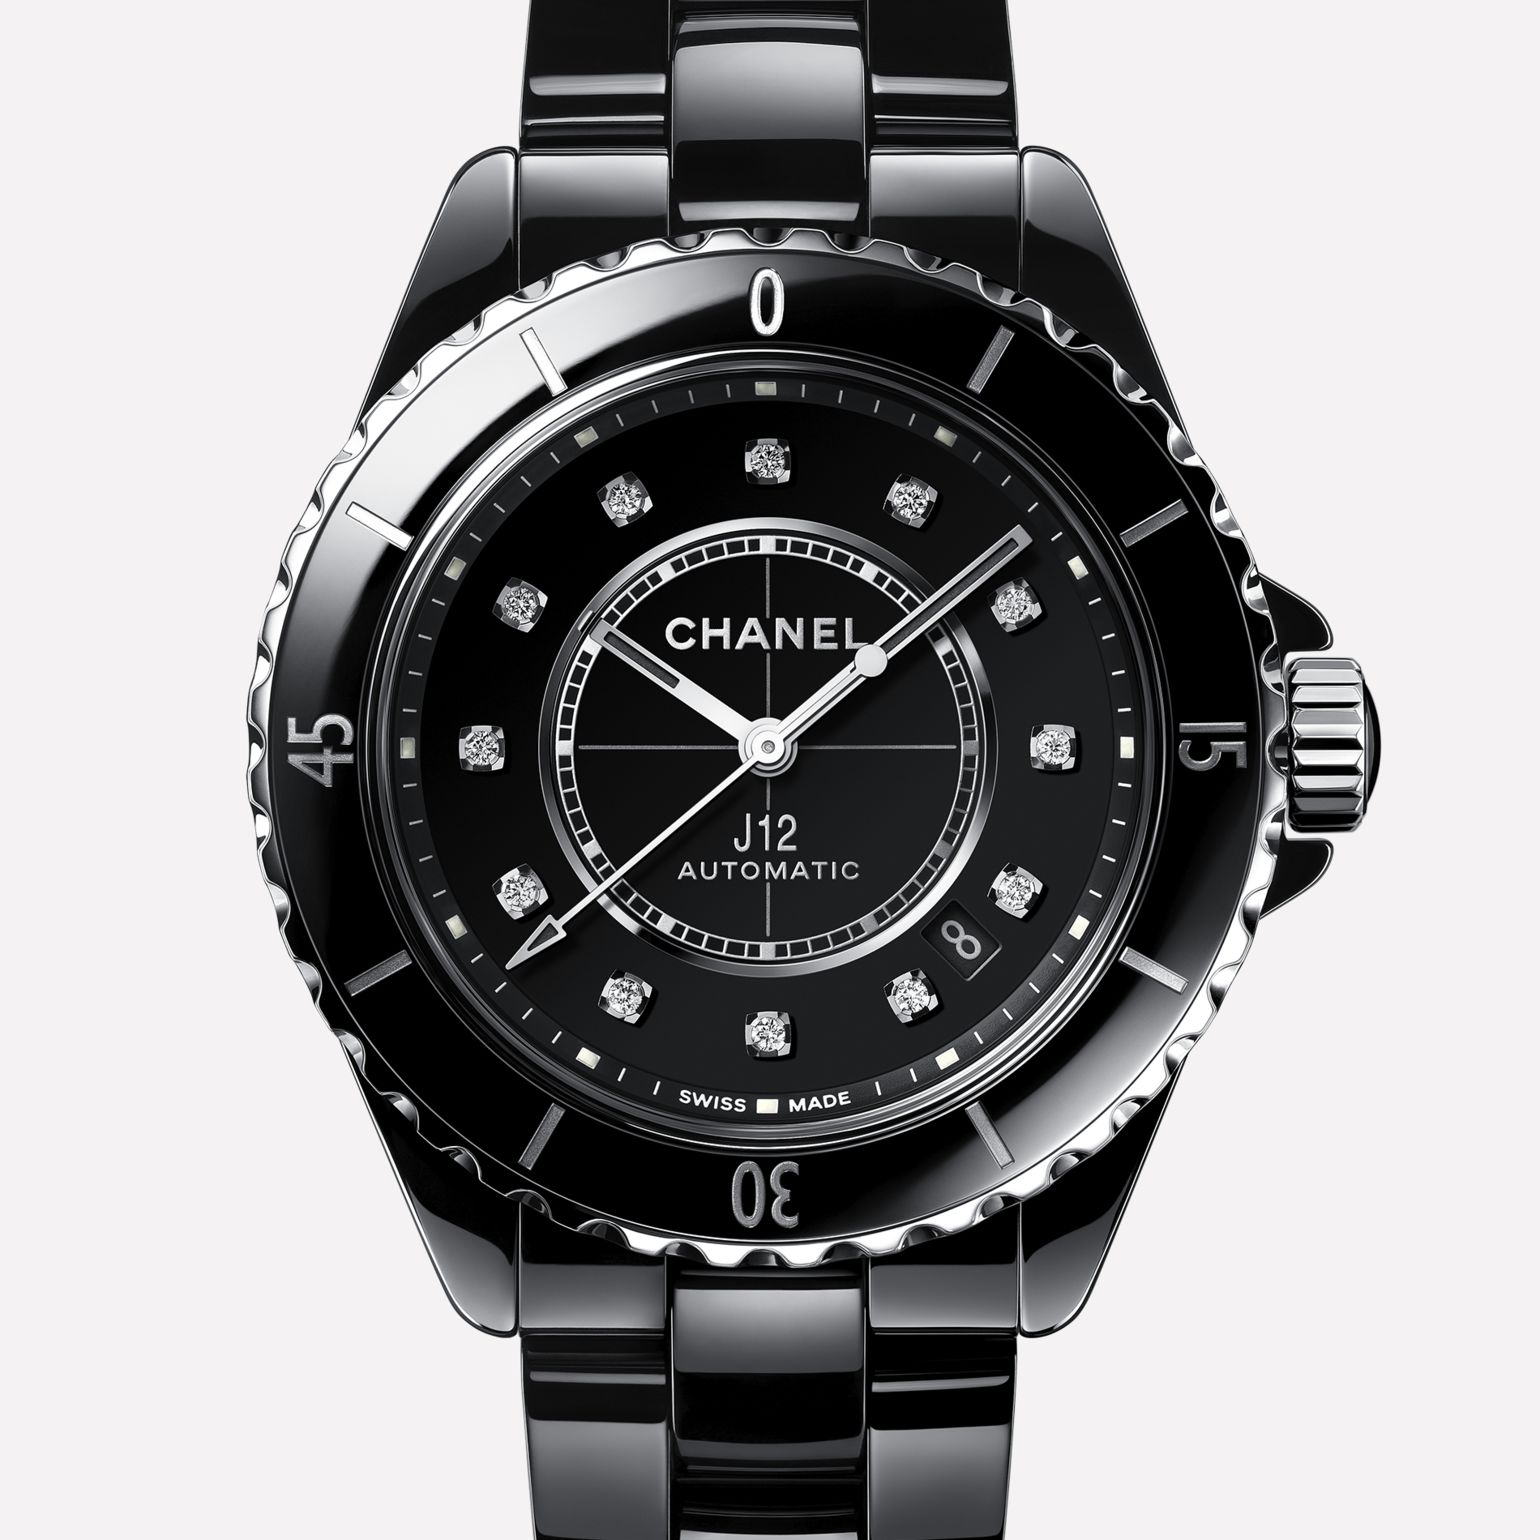 J12 Watch Black highly resistant ceramic, steel and diamonds